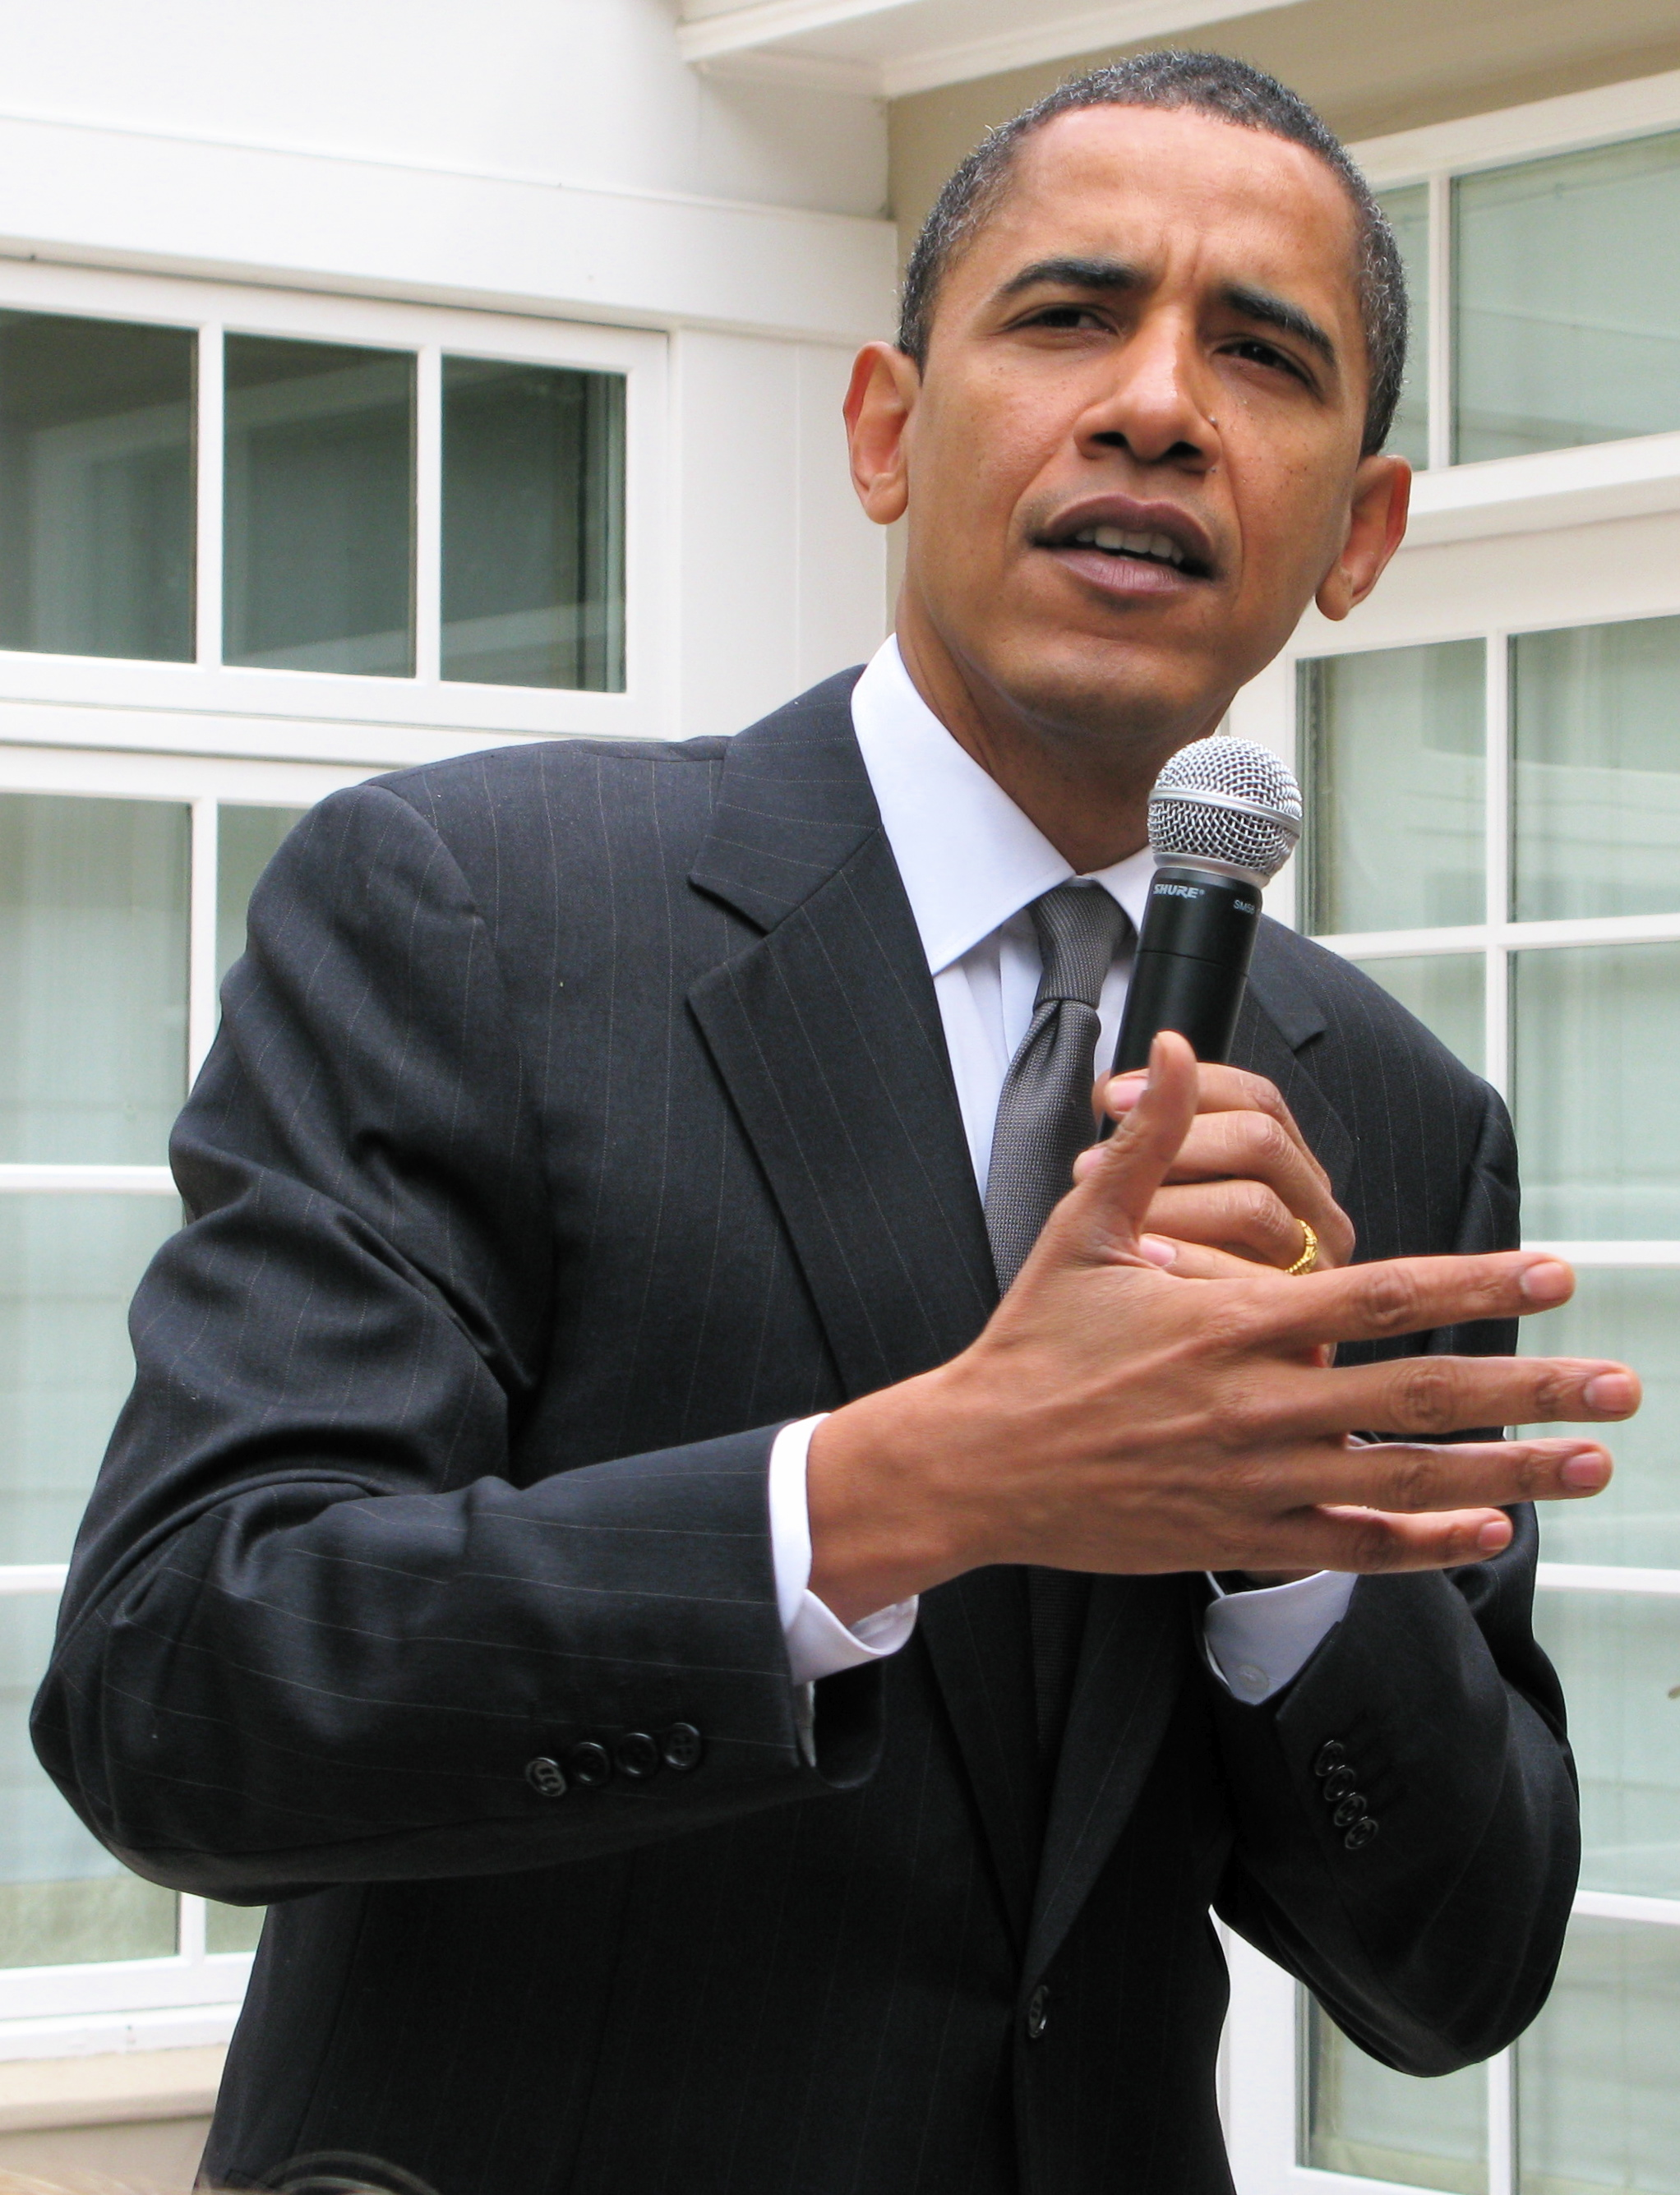 Barack Obama (Photo by Steve Jurvetson via Wiki Commons)